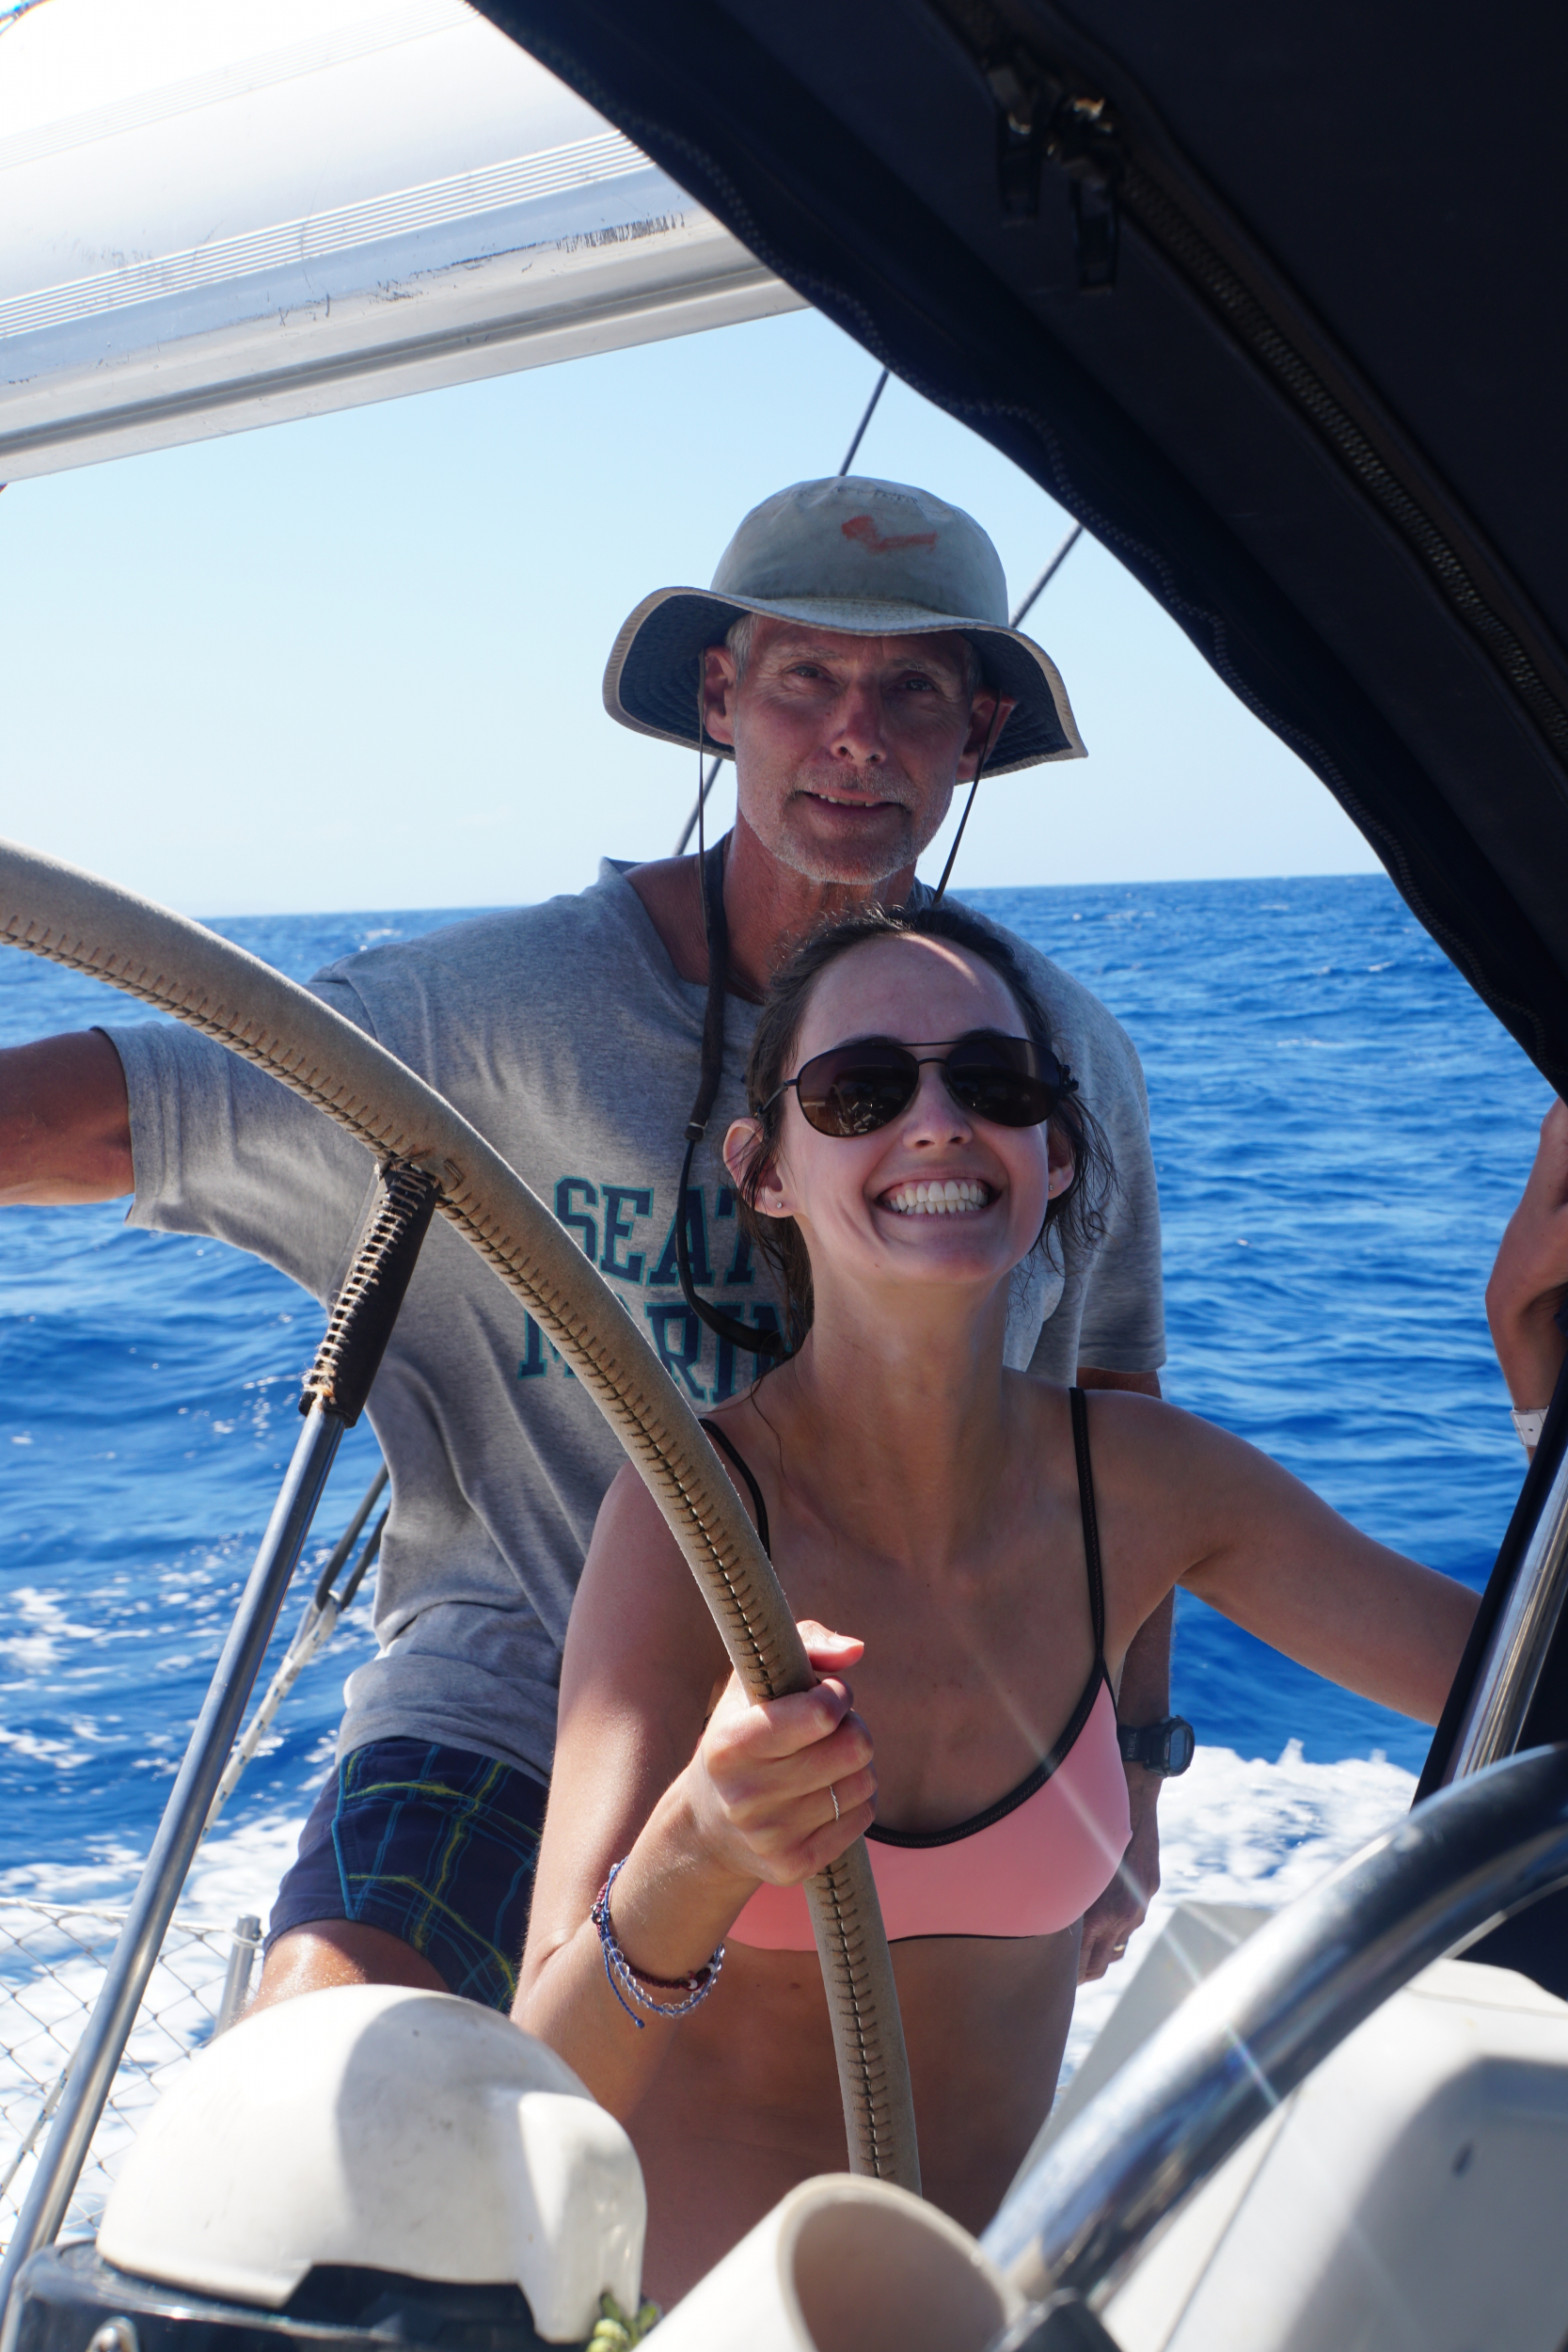 73. Refresher on steering the boat